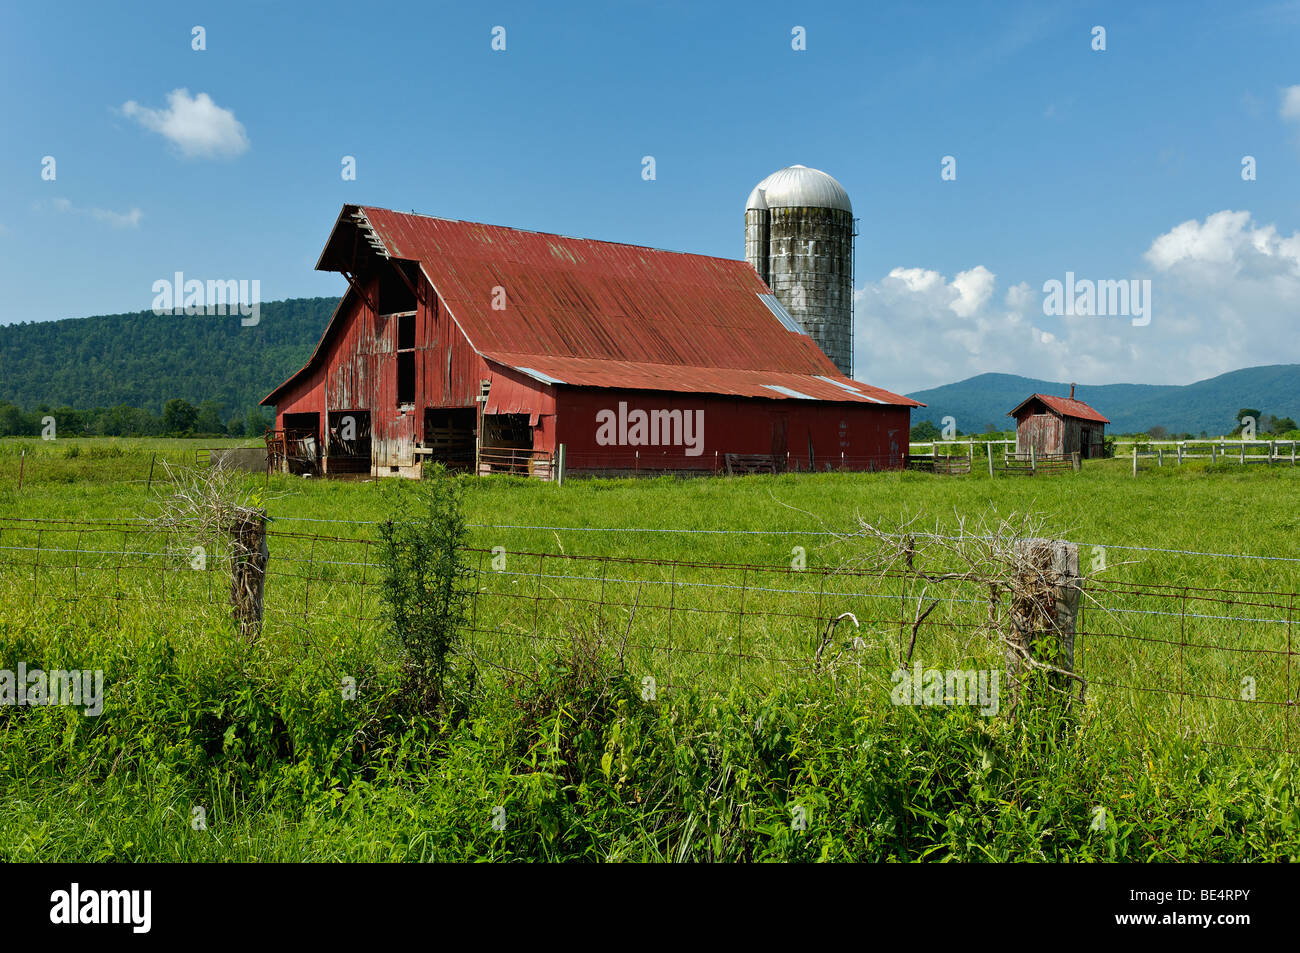 Cow on green pasture with red barn with grain silo royalty free stock - Red Barn And Fence In Grassy Cove In Cumberland County Tennessee Stock Image